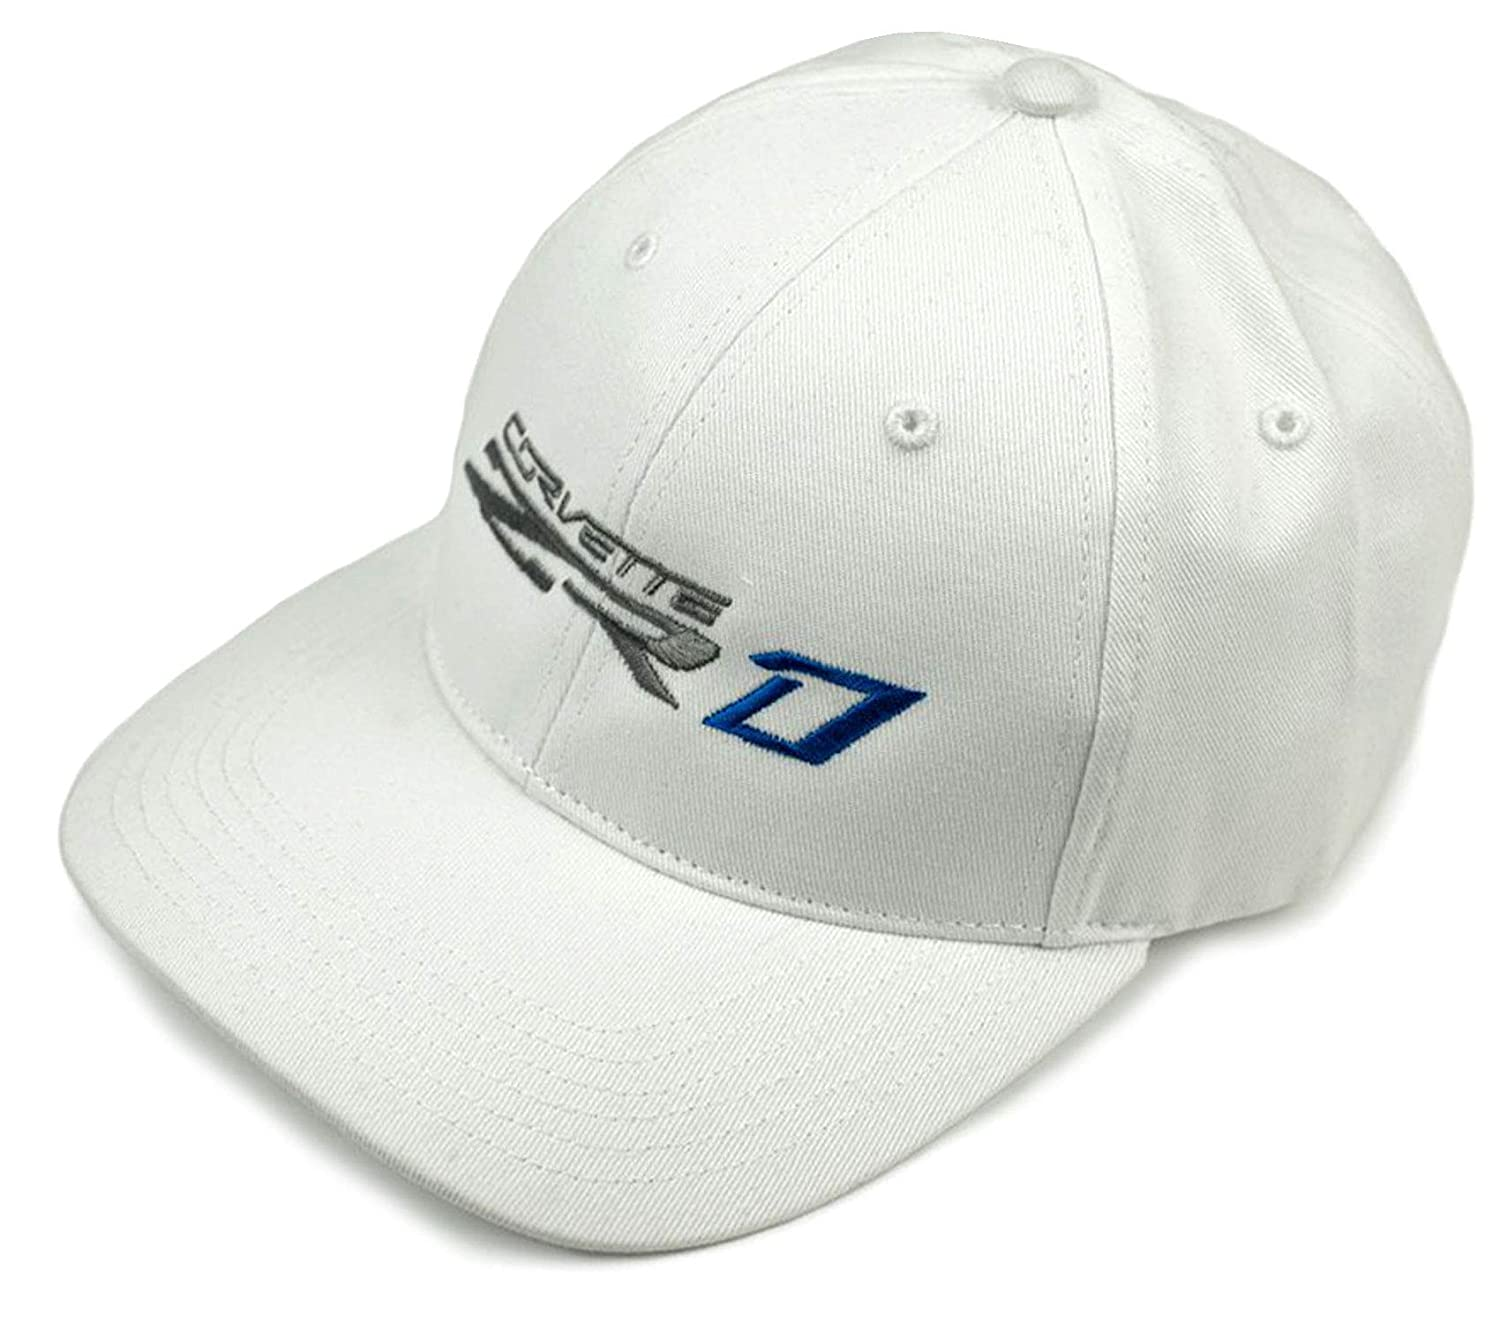 Bundle with Driving Style Decal Gregs Automotive ZR1 Corvette Chevrolet Chevy White Hat Cap